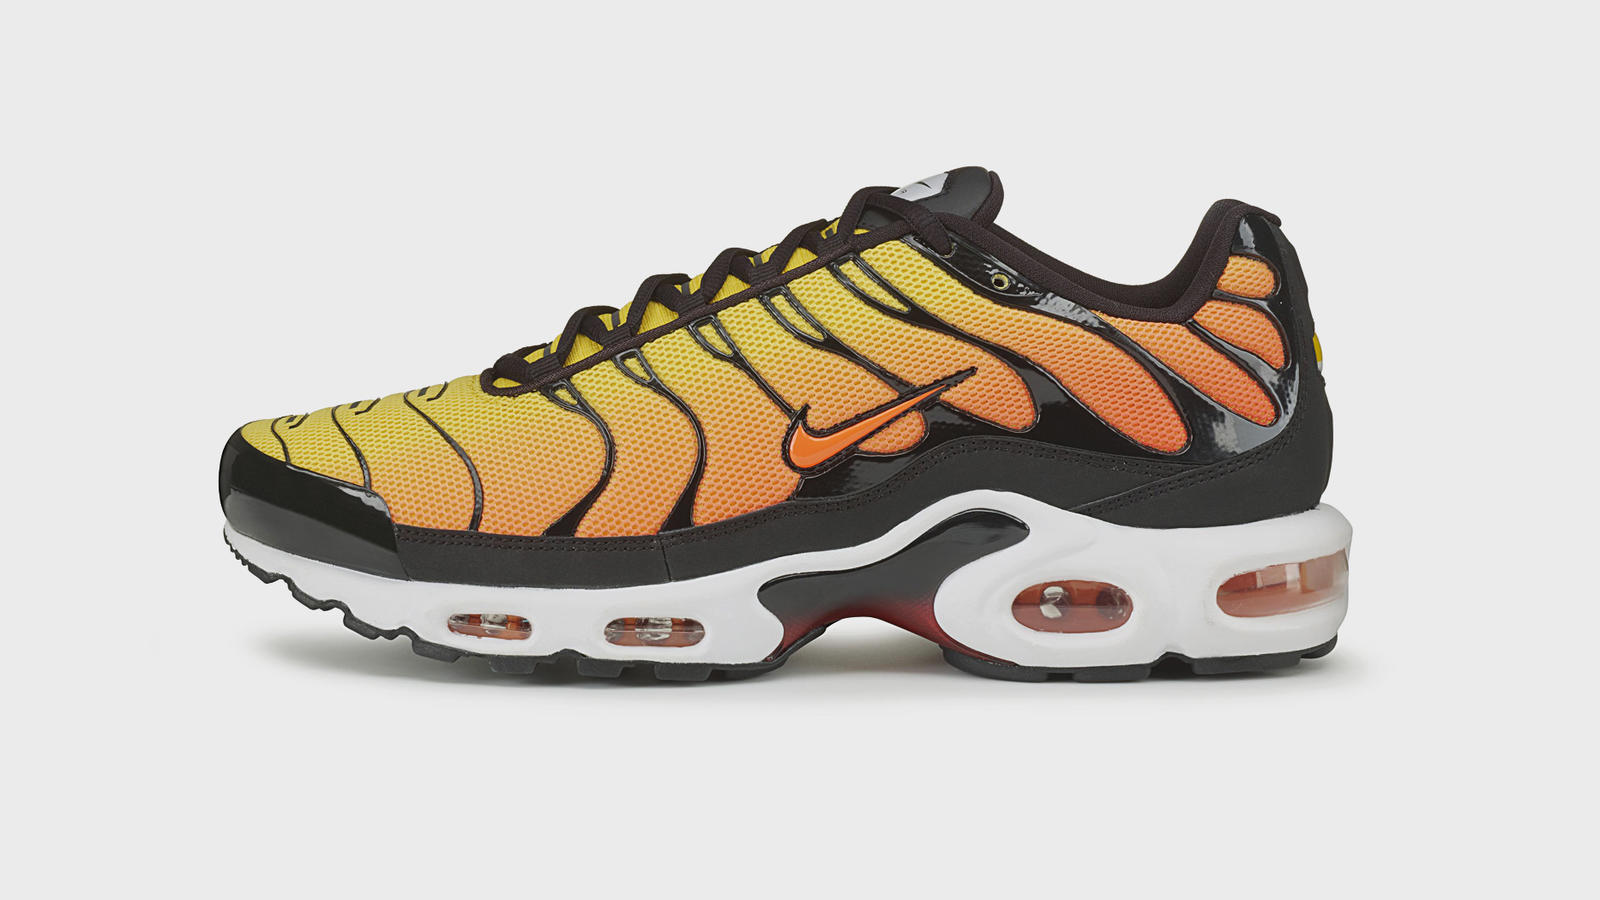 detailed look c4ad9 d5301 The Untold Story of the Nike Air Max Plus 23